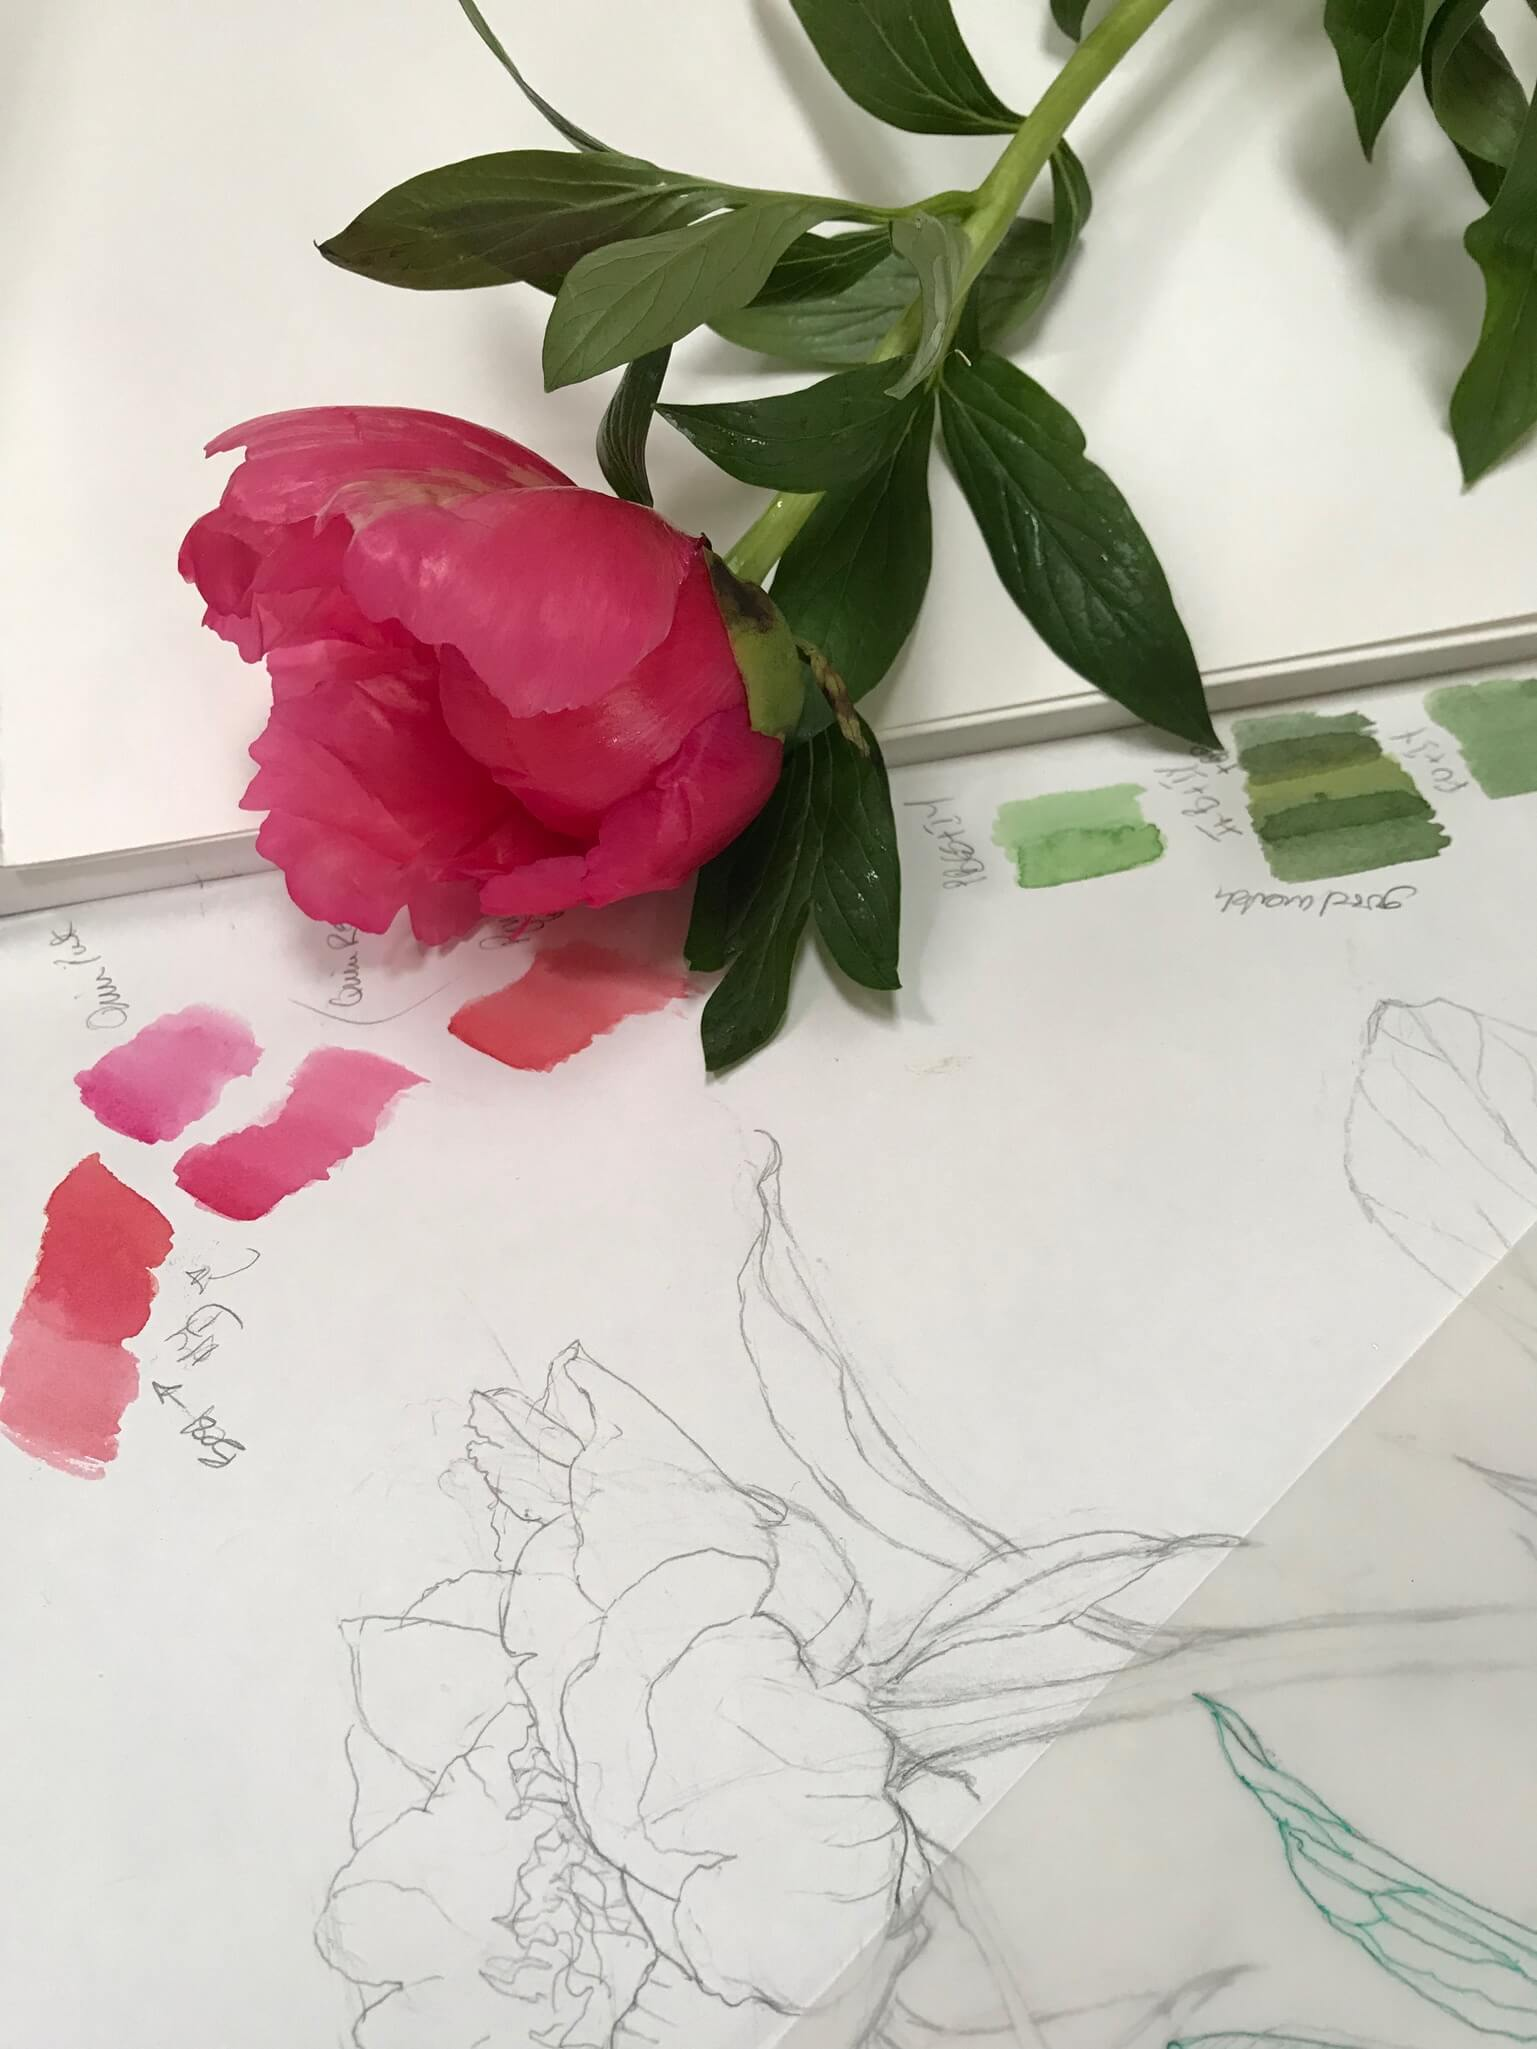 Pink flower with green stem on top of an open sketch book.